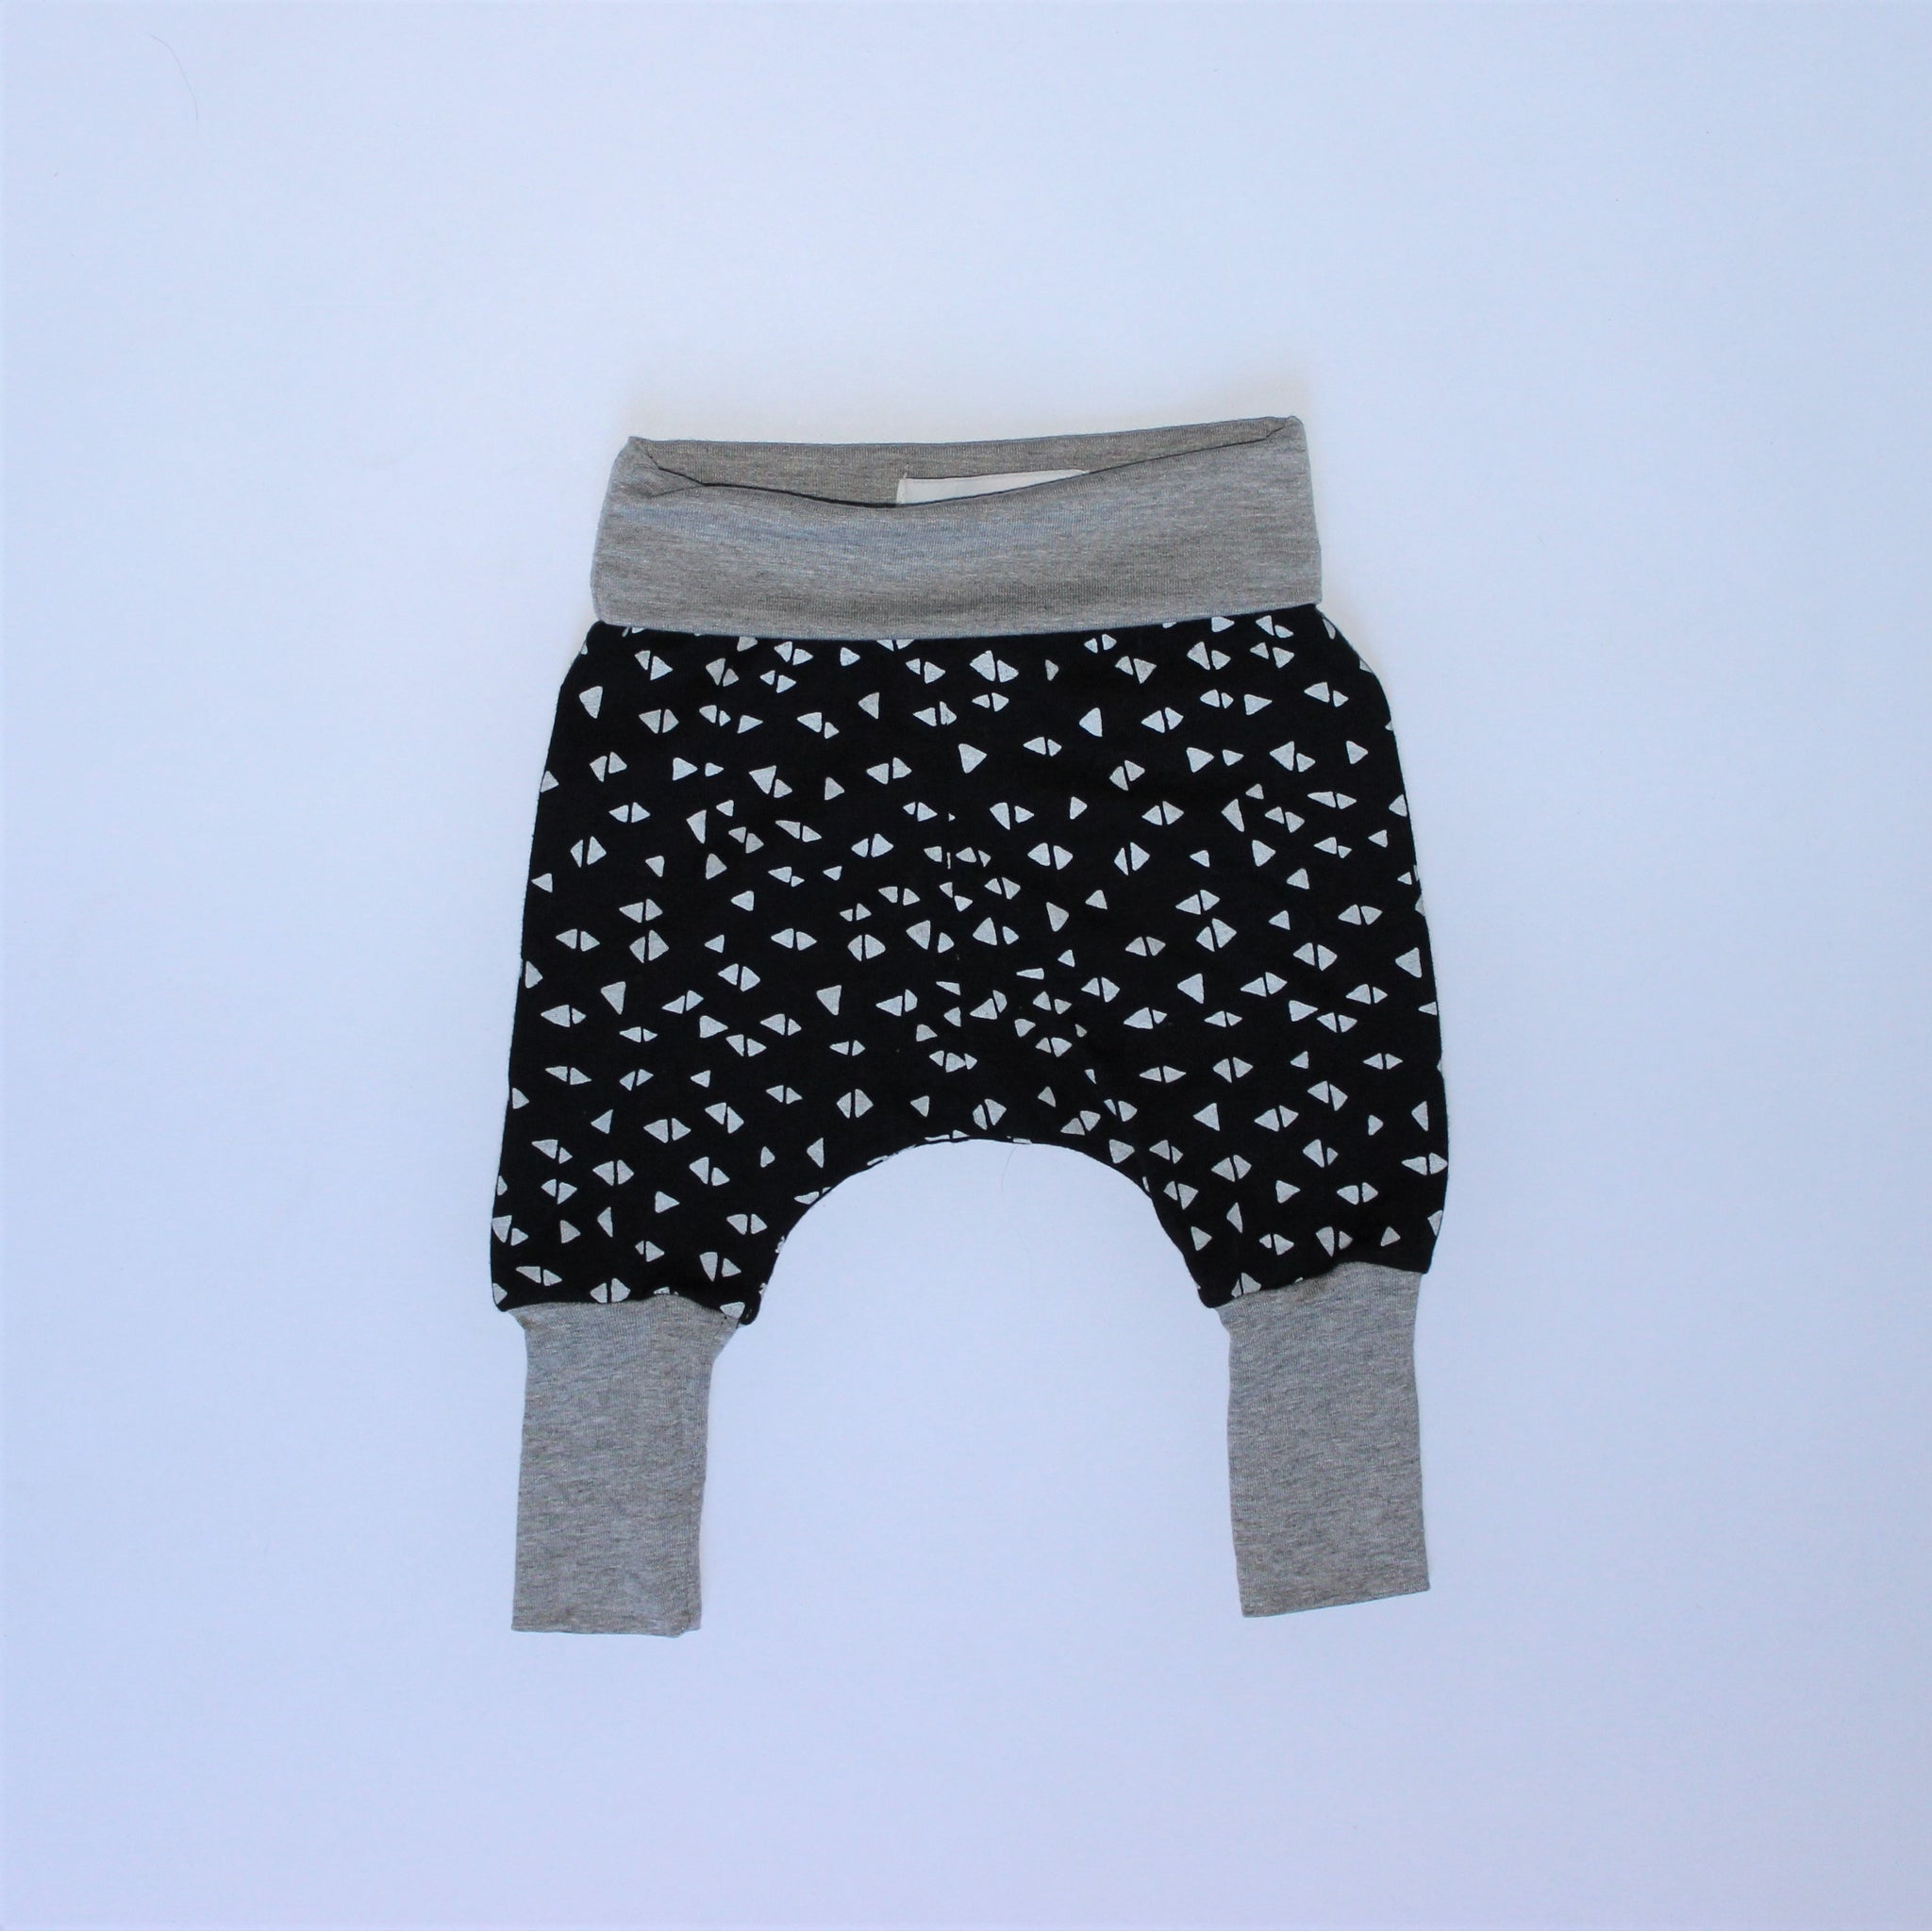 New Born Pants - Triangles, Grey and Black